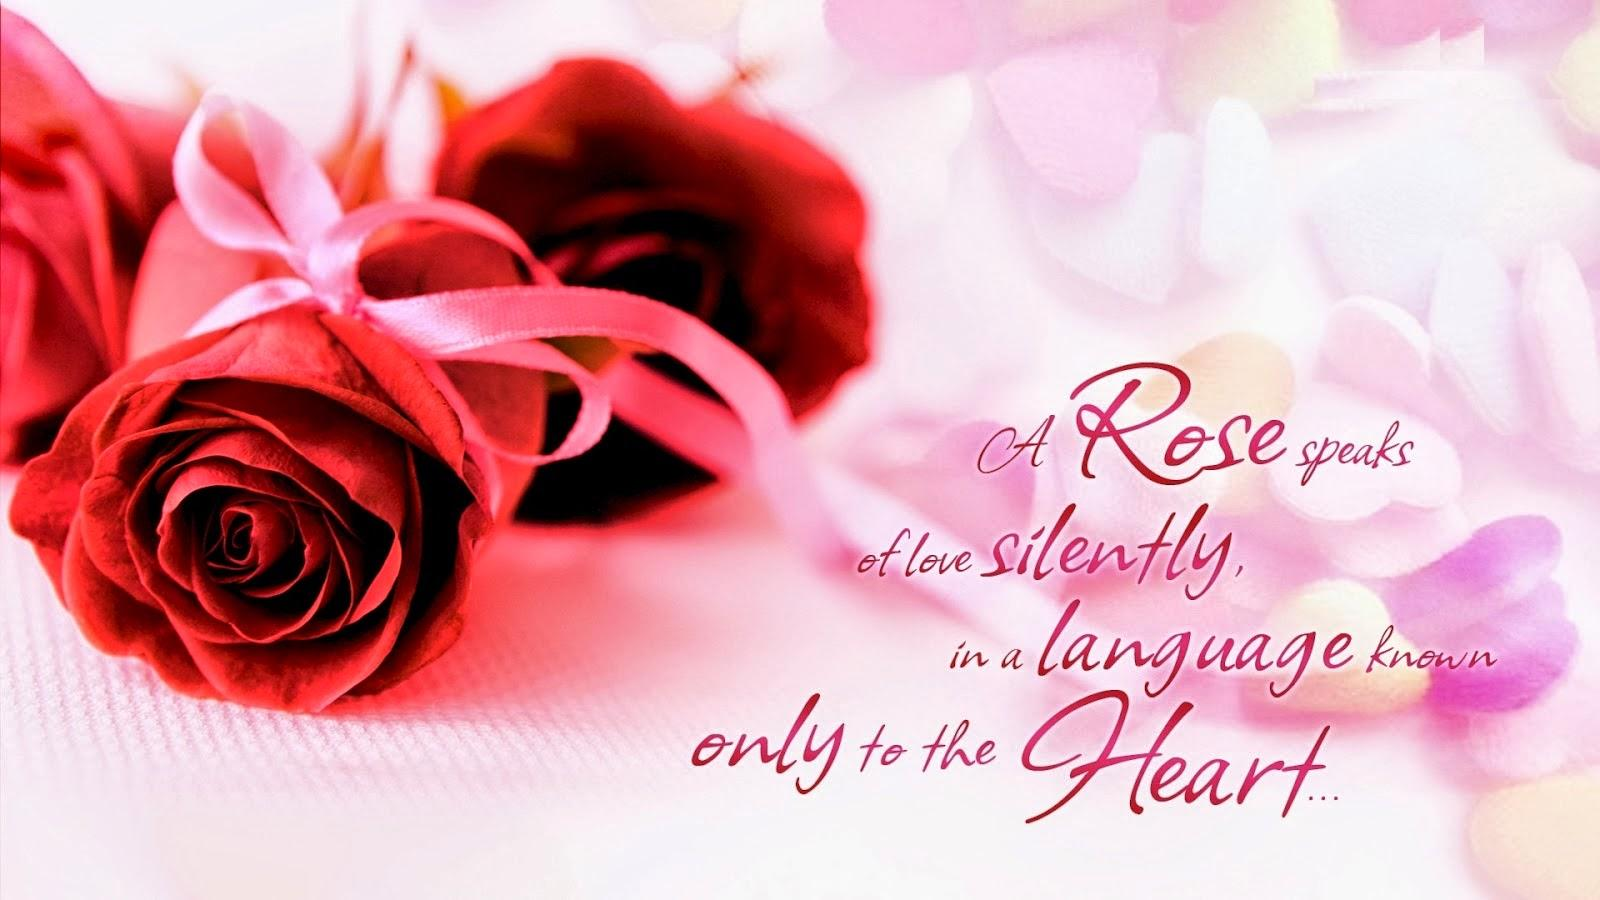 Happy Rose Day 2020 Quotes, Sms, Shayari And Image